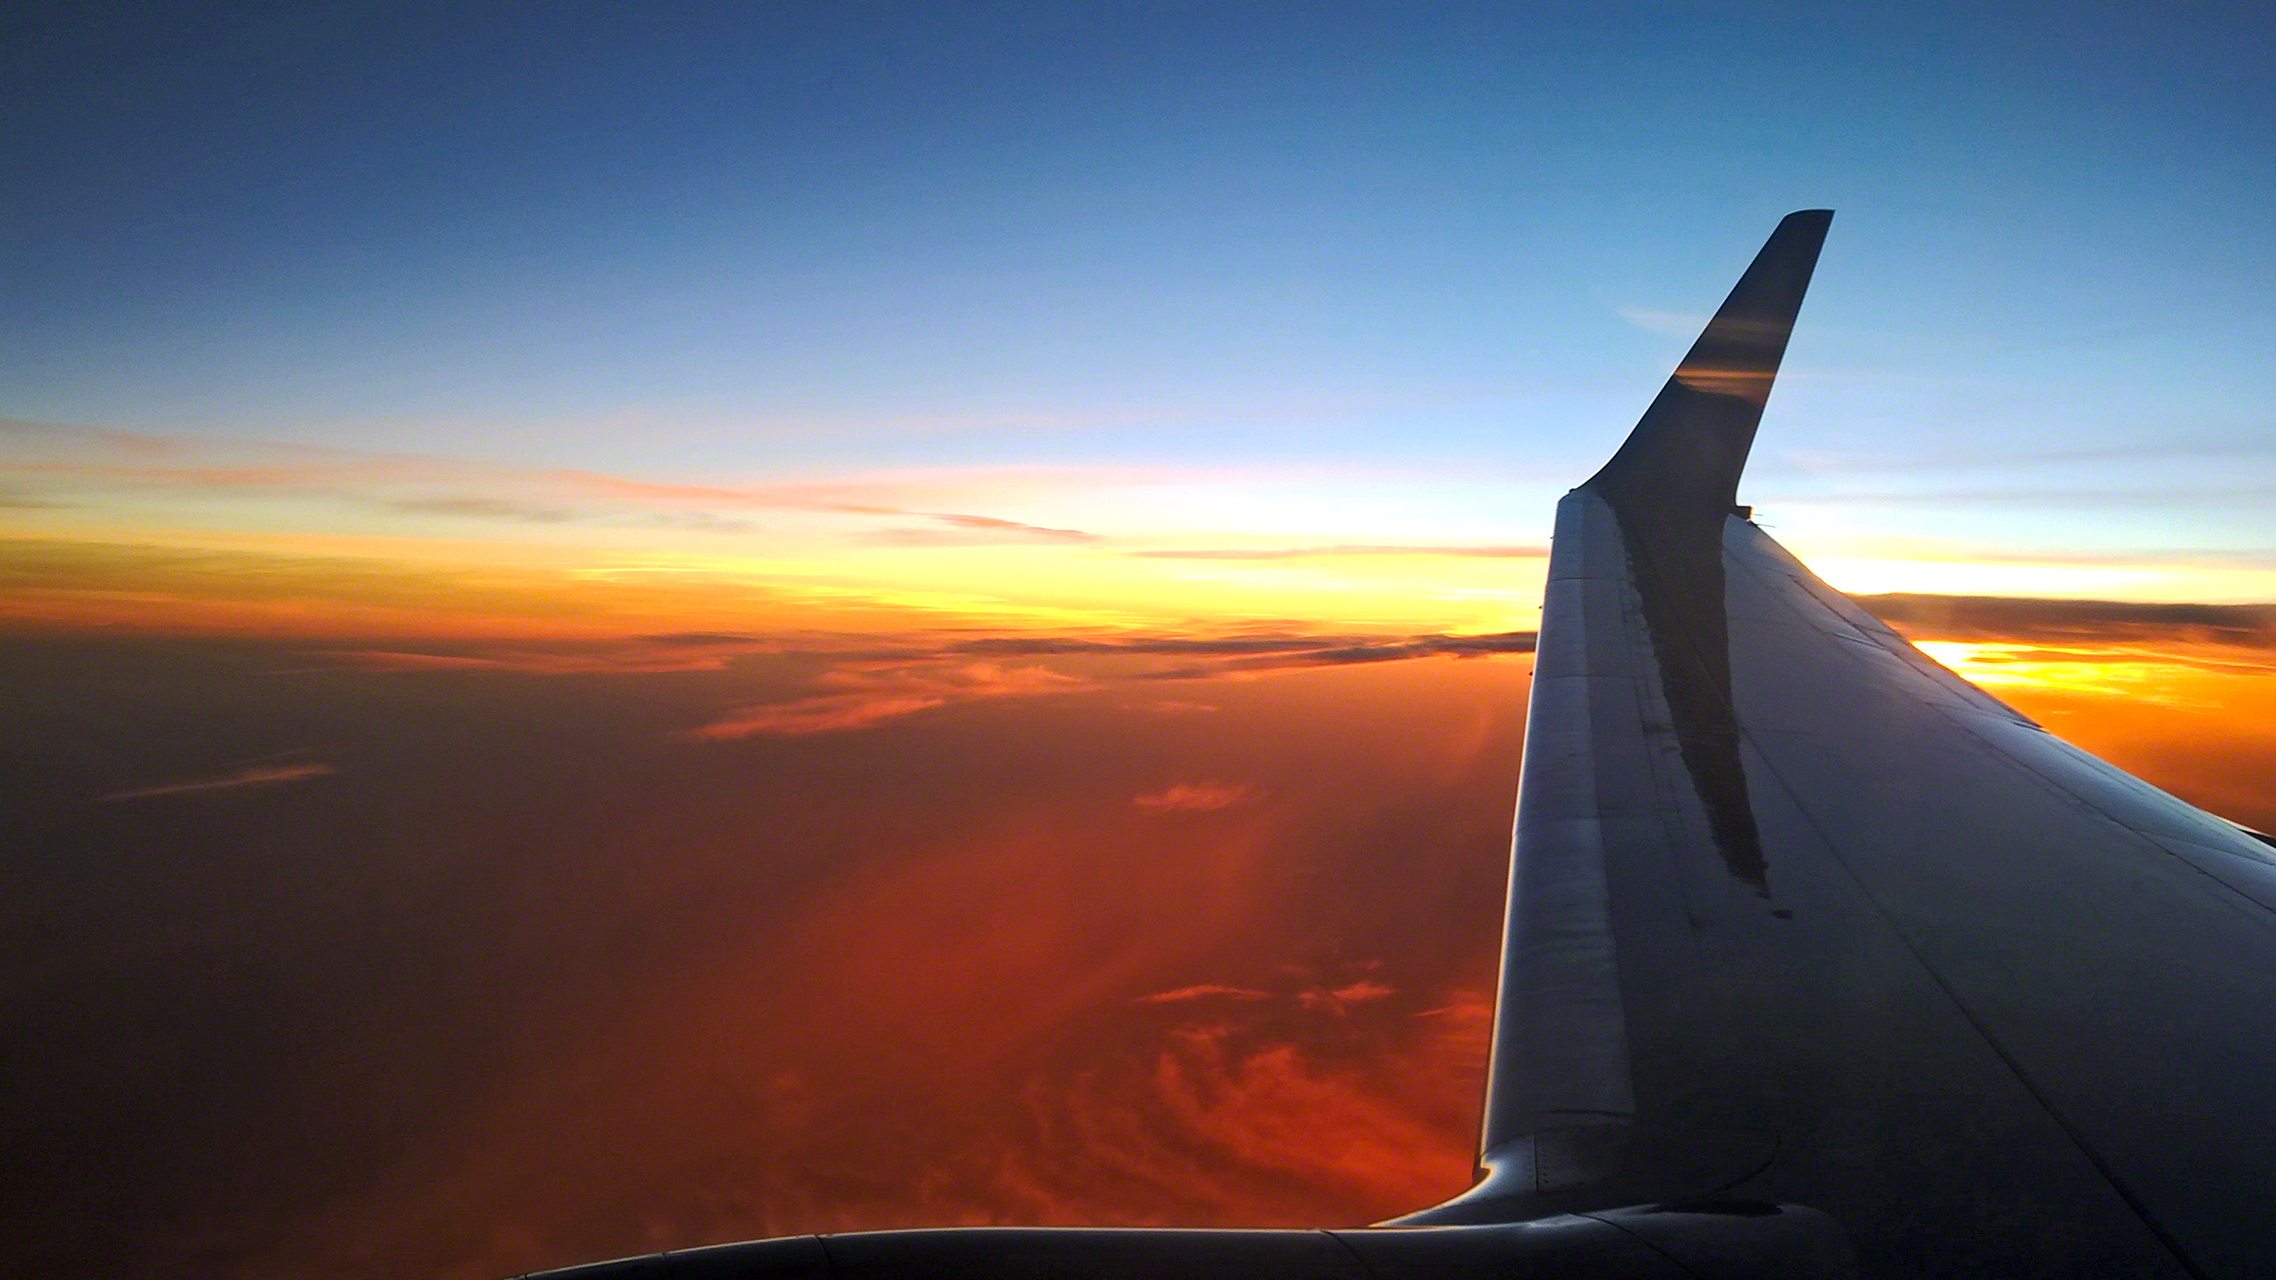 Sunset Photo from the PLANE